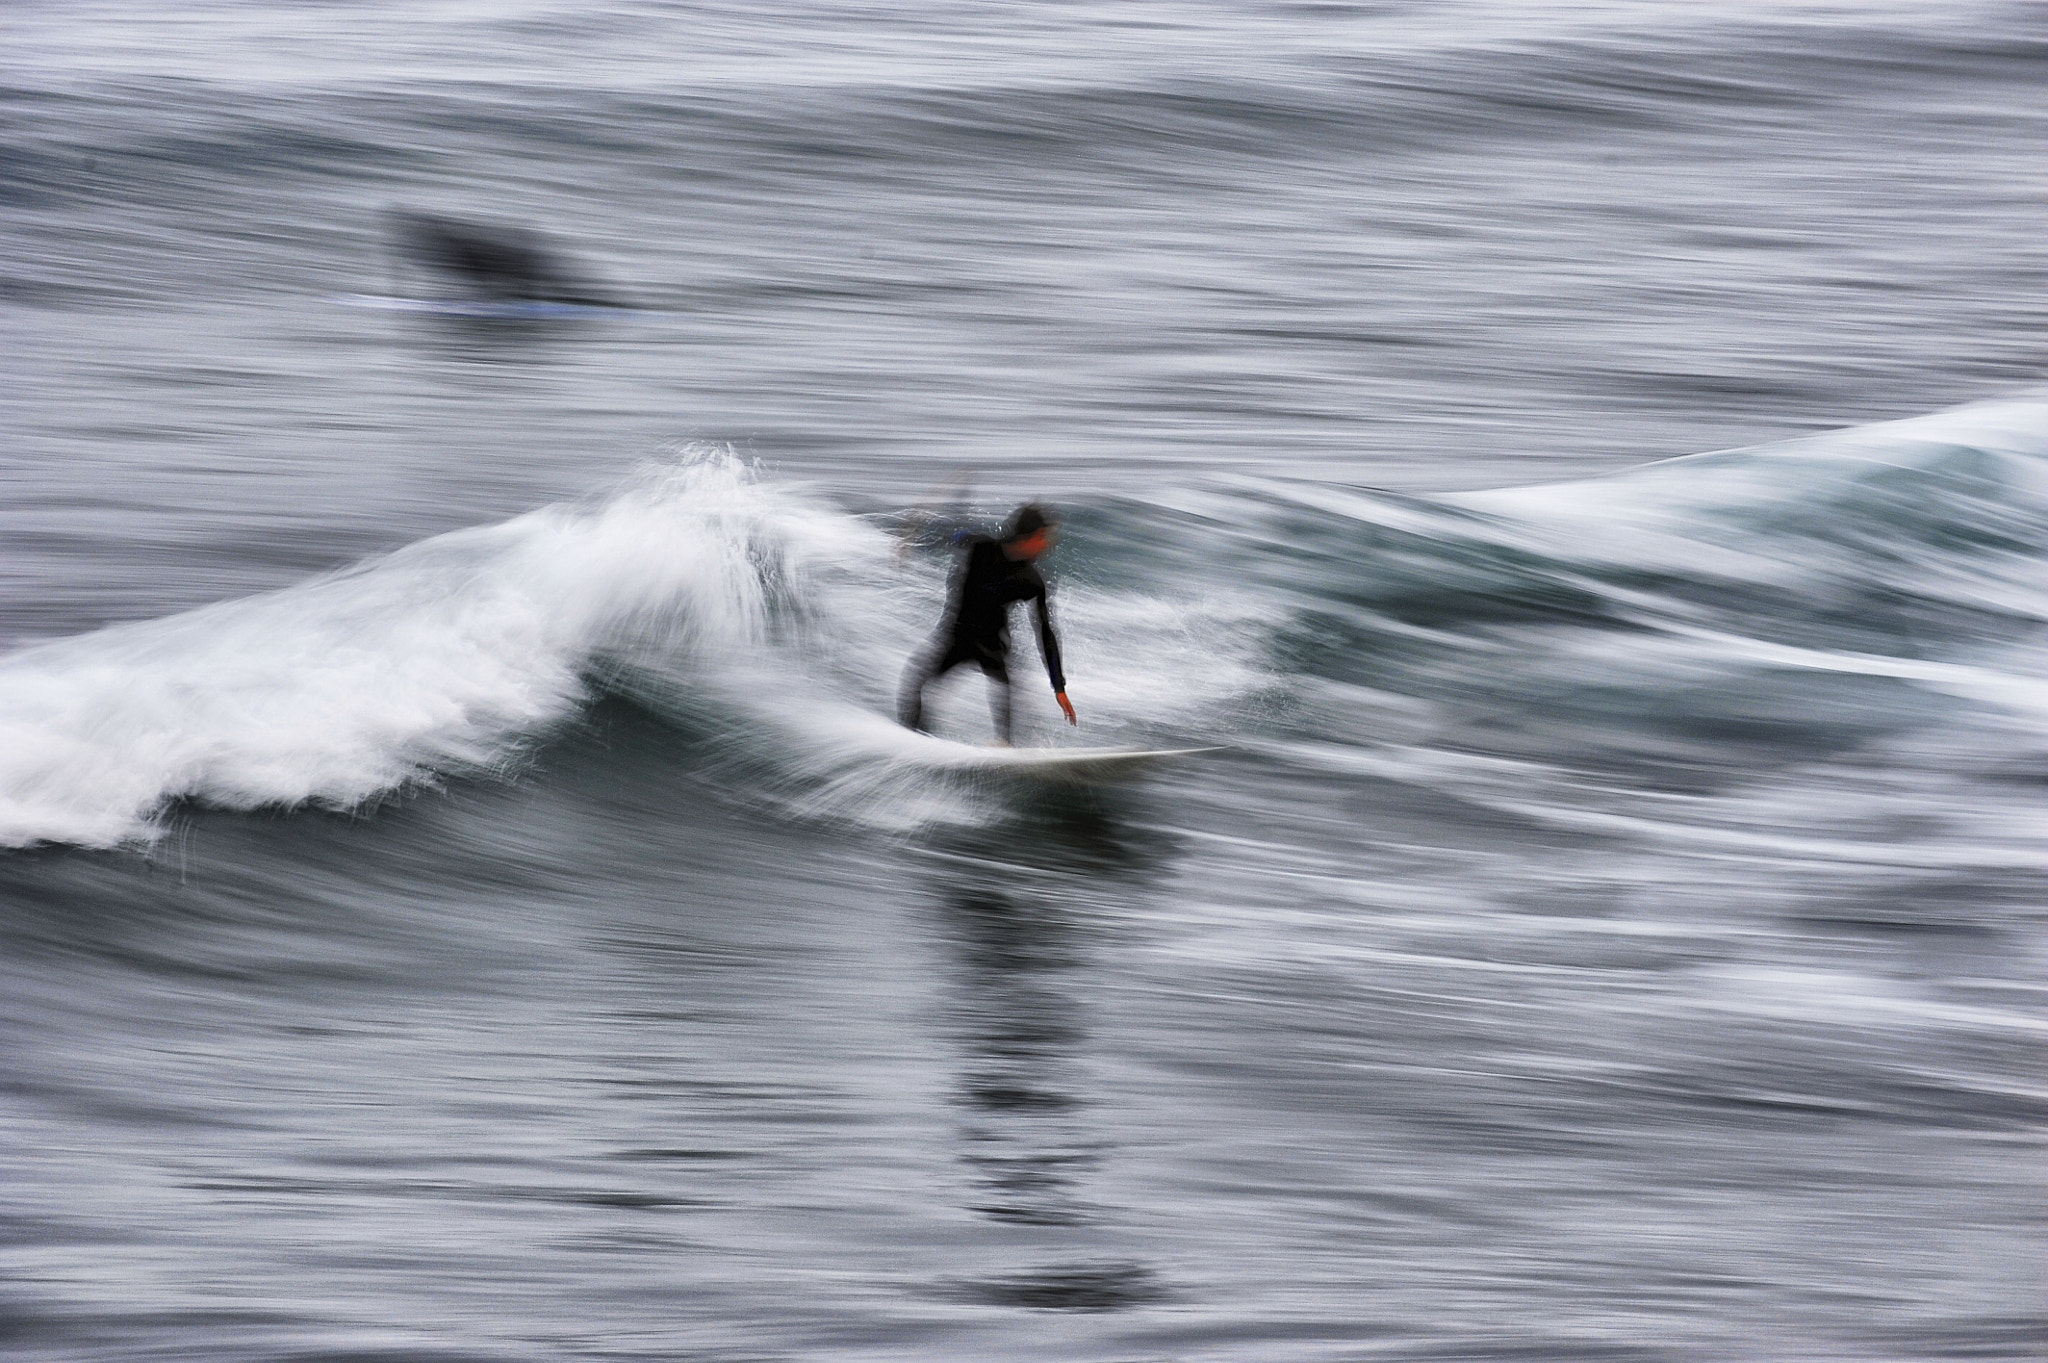 Photograph Surfer in Oceanside - July 2, 2012 by Rich Cruse on 500px